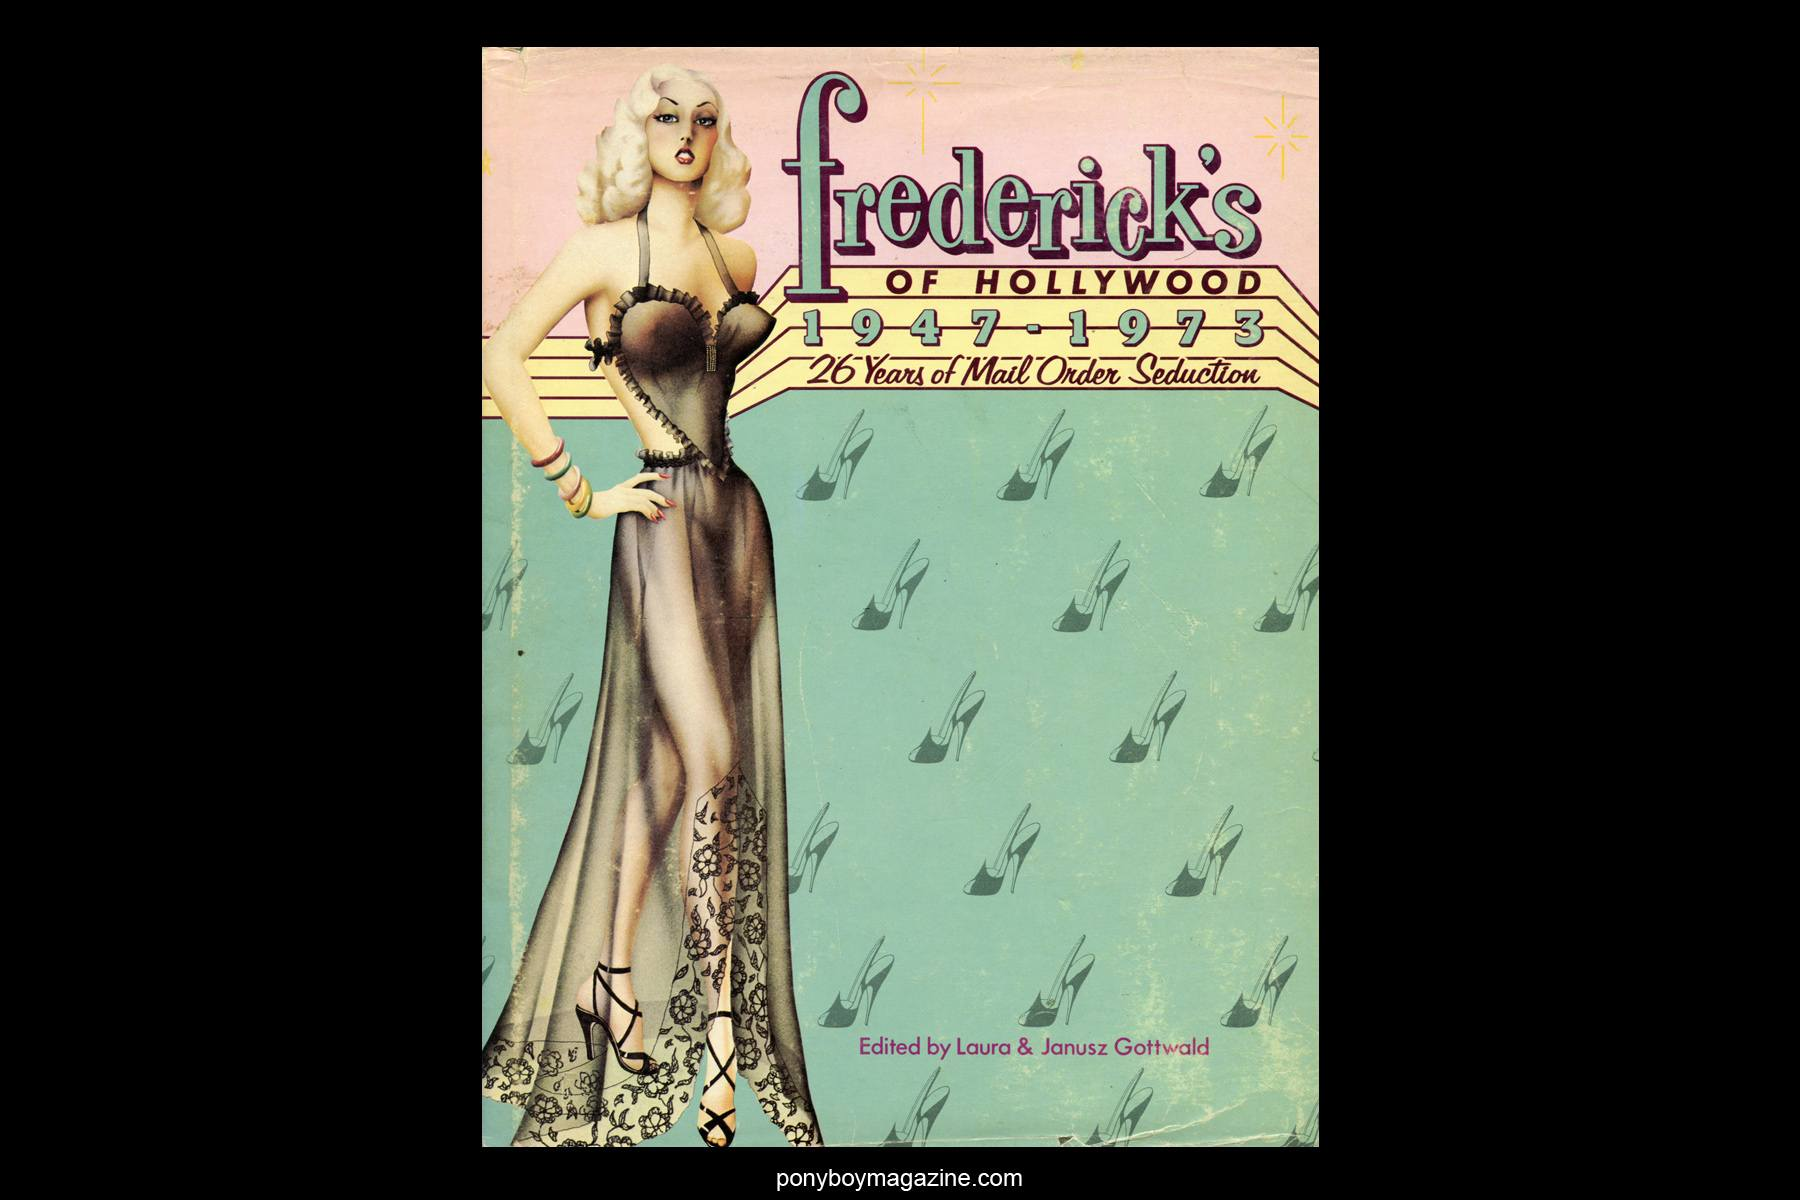 Cover of FREDERICK'S OF HOLLYWOOD: 26 Years of Mail Order Seduction. Printed in 1973 by Drake Publishers. Edited by Laura & Janusz Gottwald, Ponyboy Magazine.